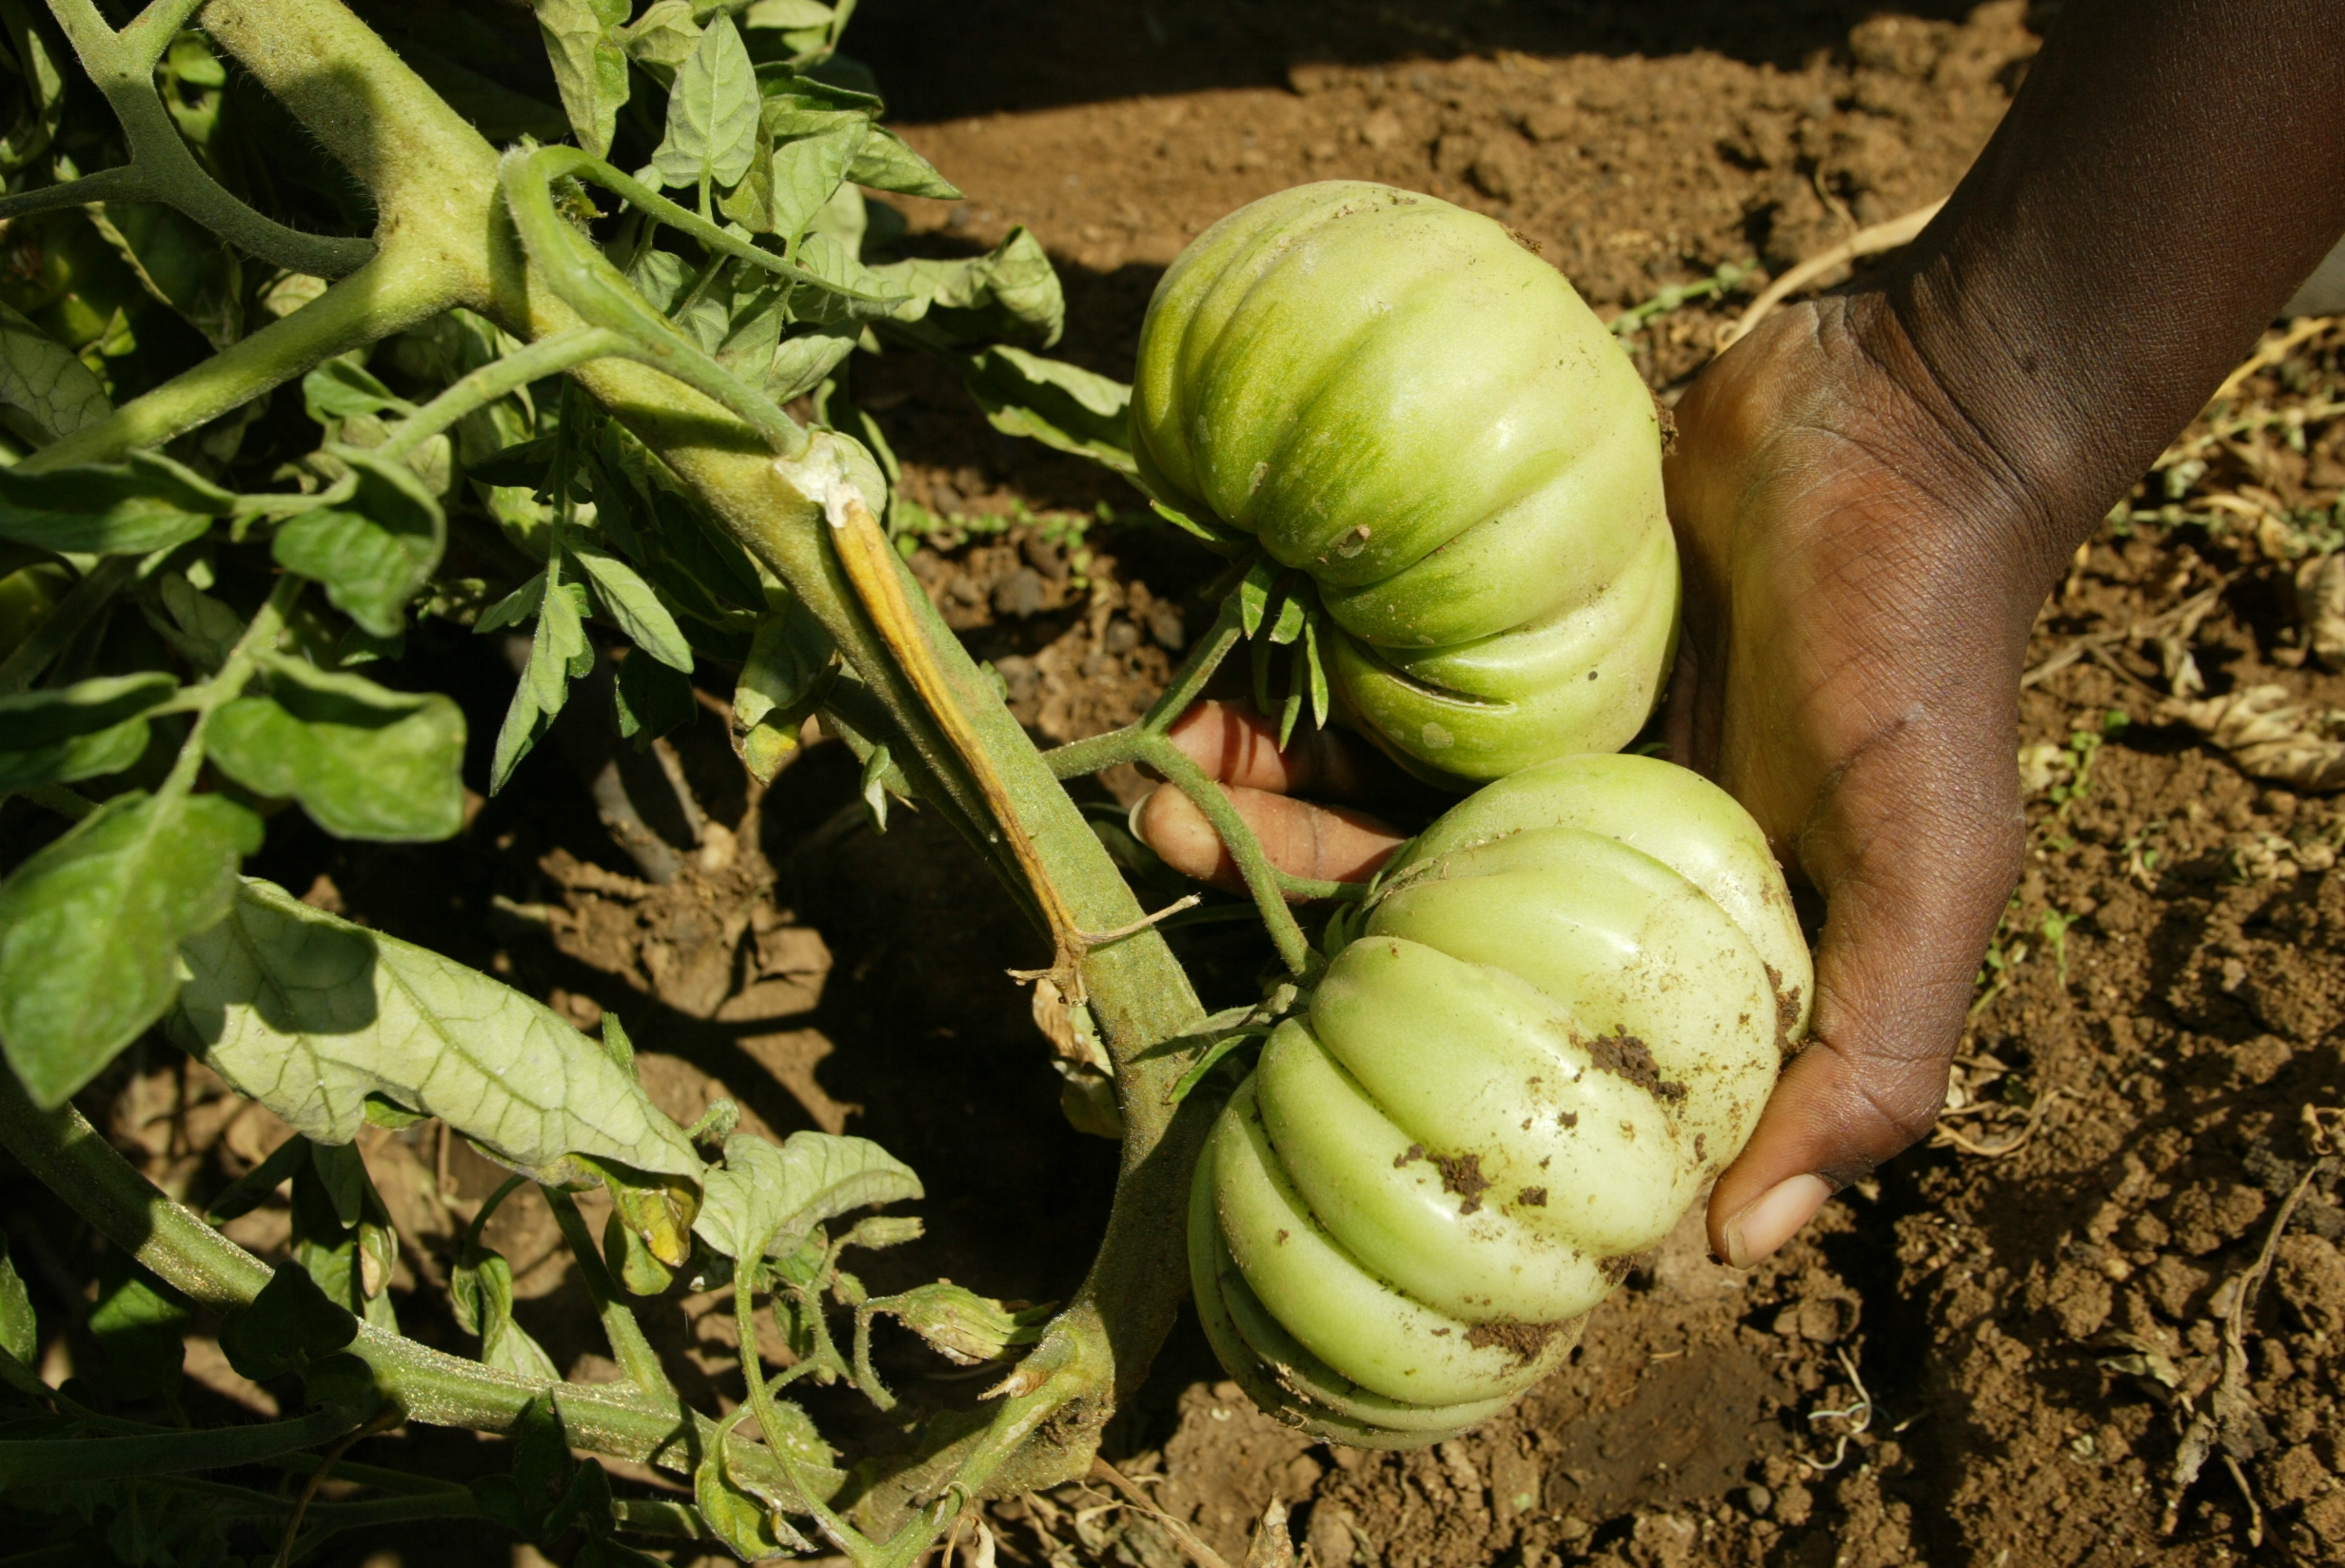 Practical Action showed farmers in Zimbabwe how to make better use of the water in low-rainfall areas and to increase production of plants such as these tomatoes. Practical Action/Desmond Kawanda